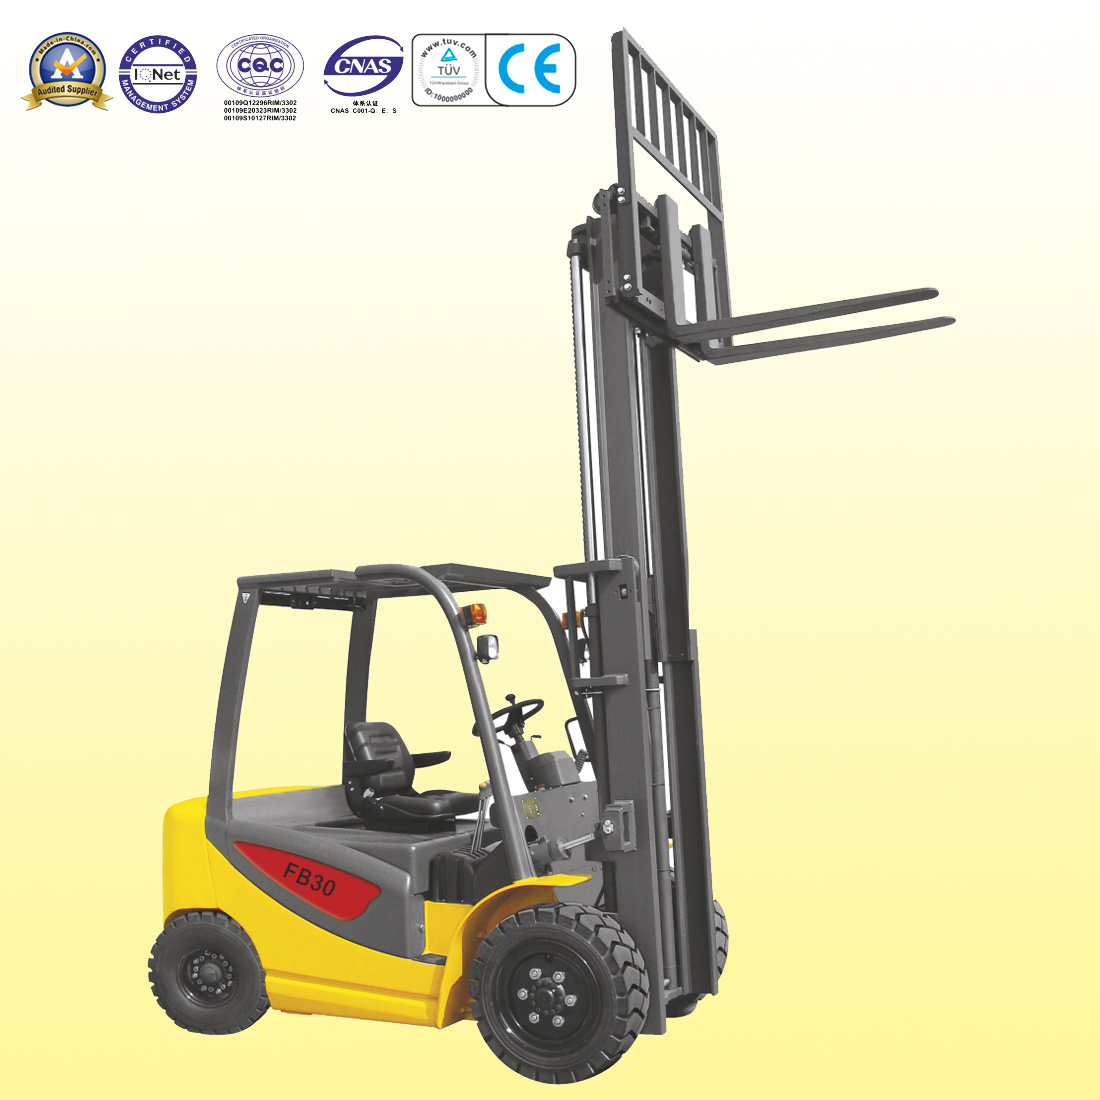 2.5-3.5t Electric Forklift Truck